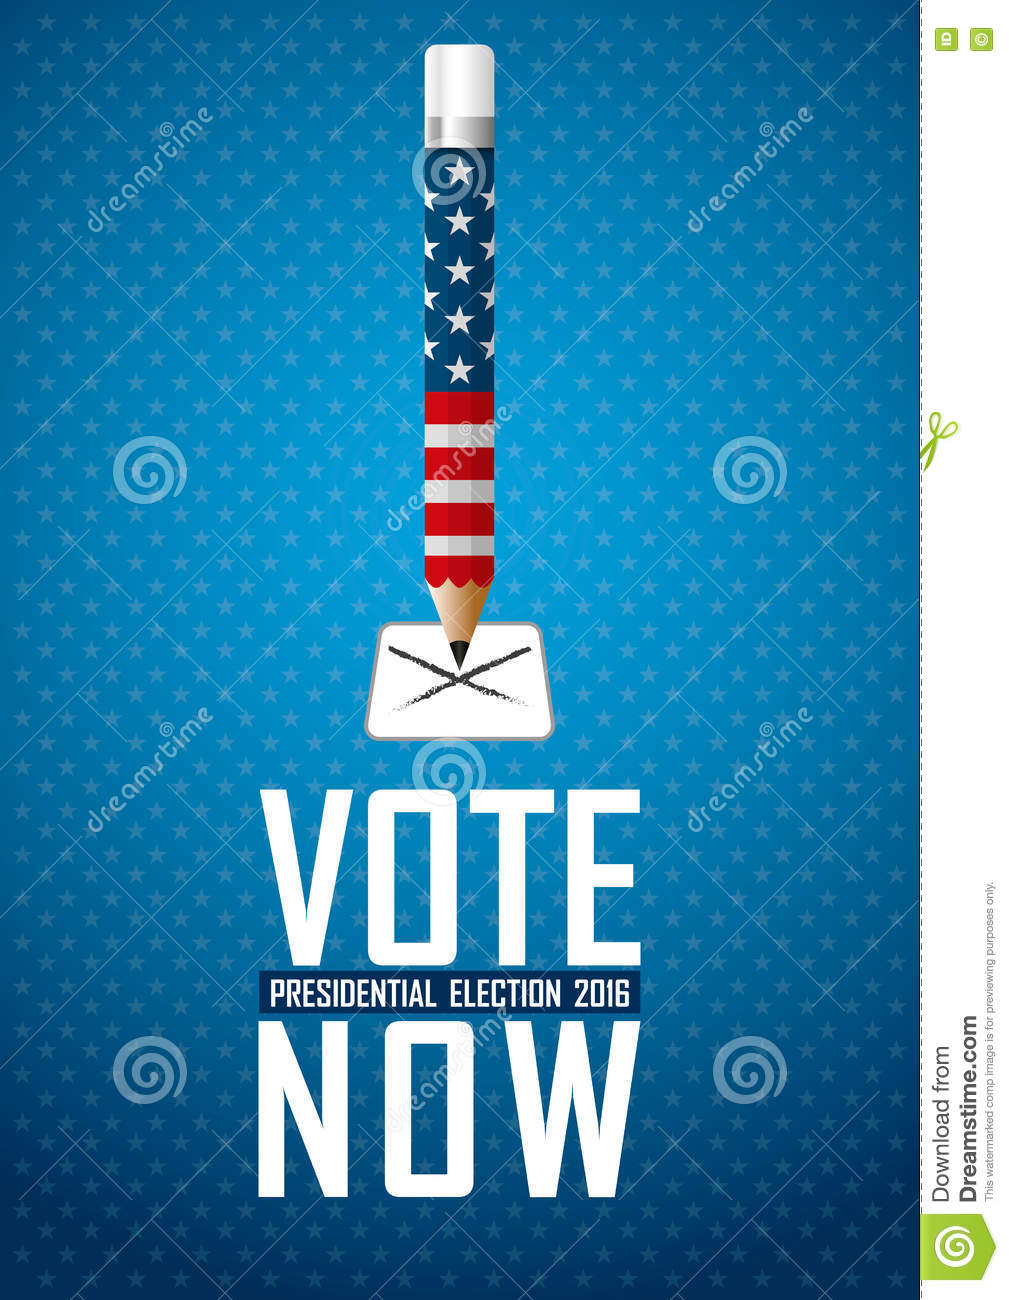 2016 presidential election voting guide